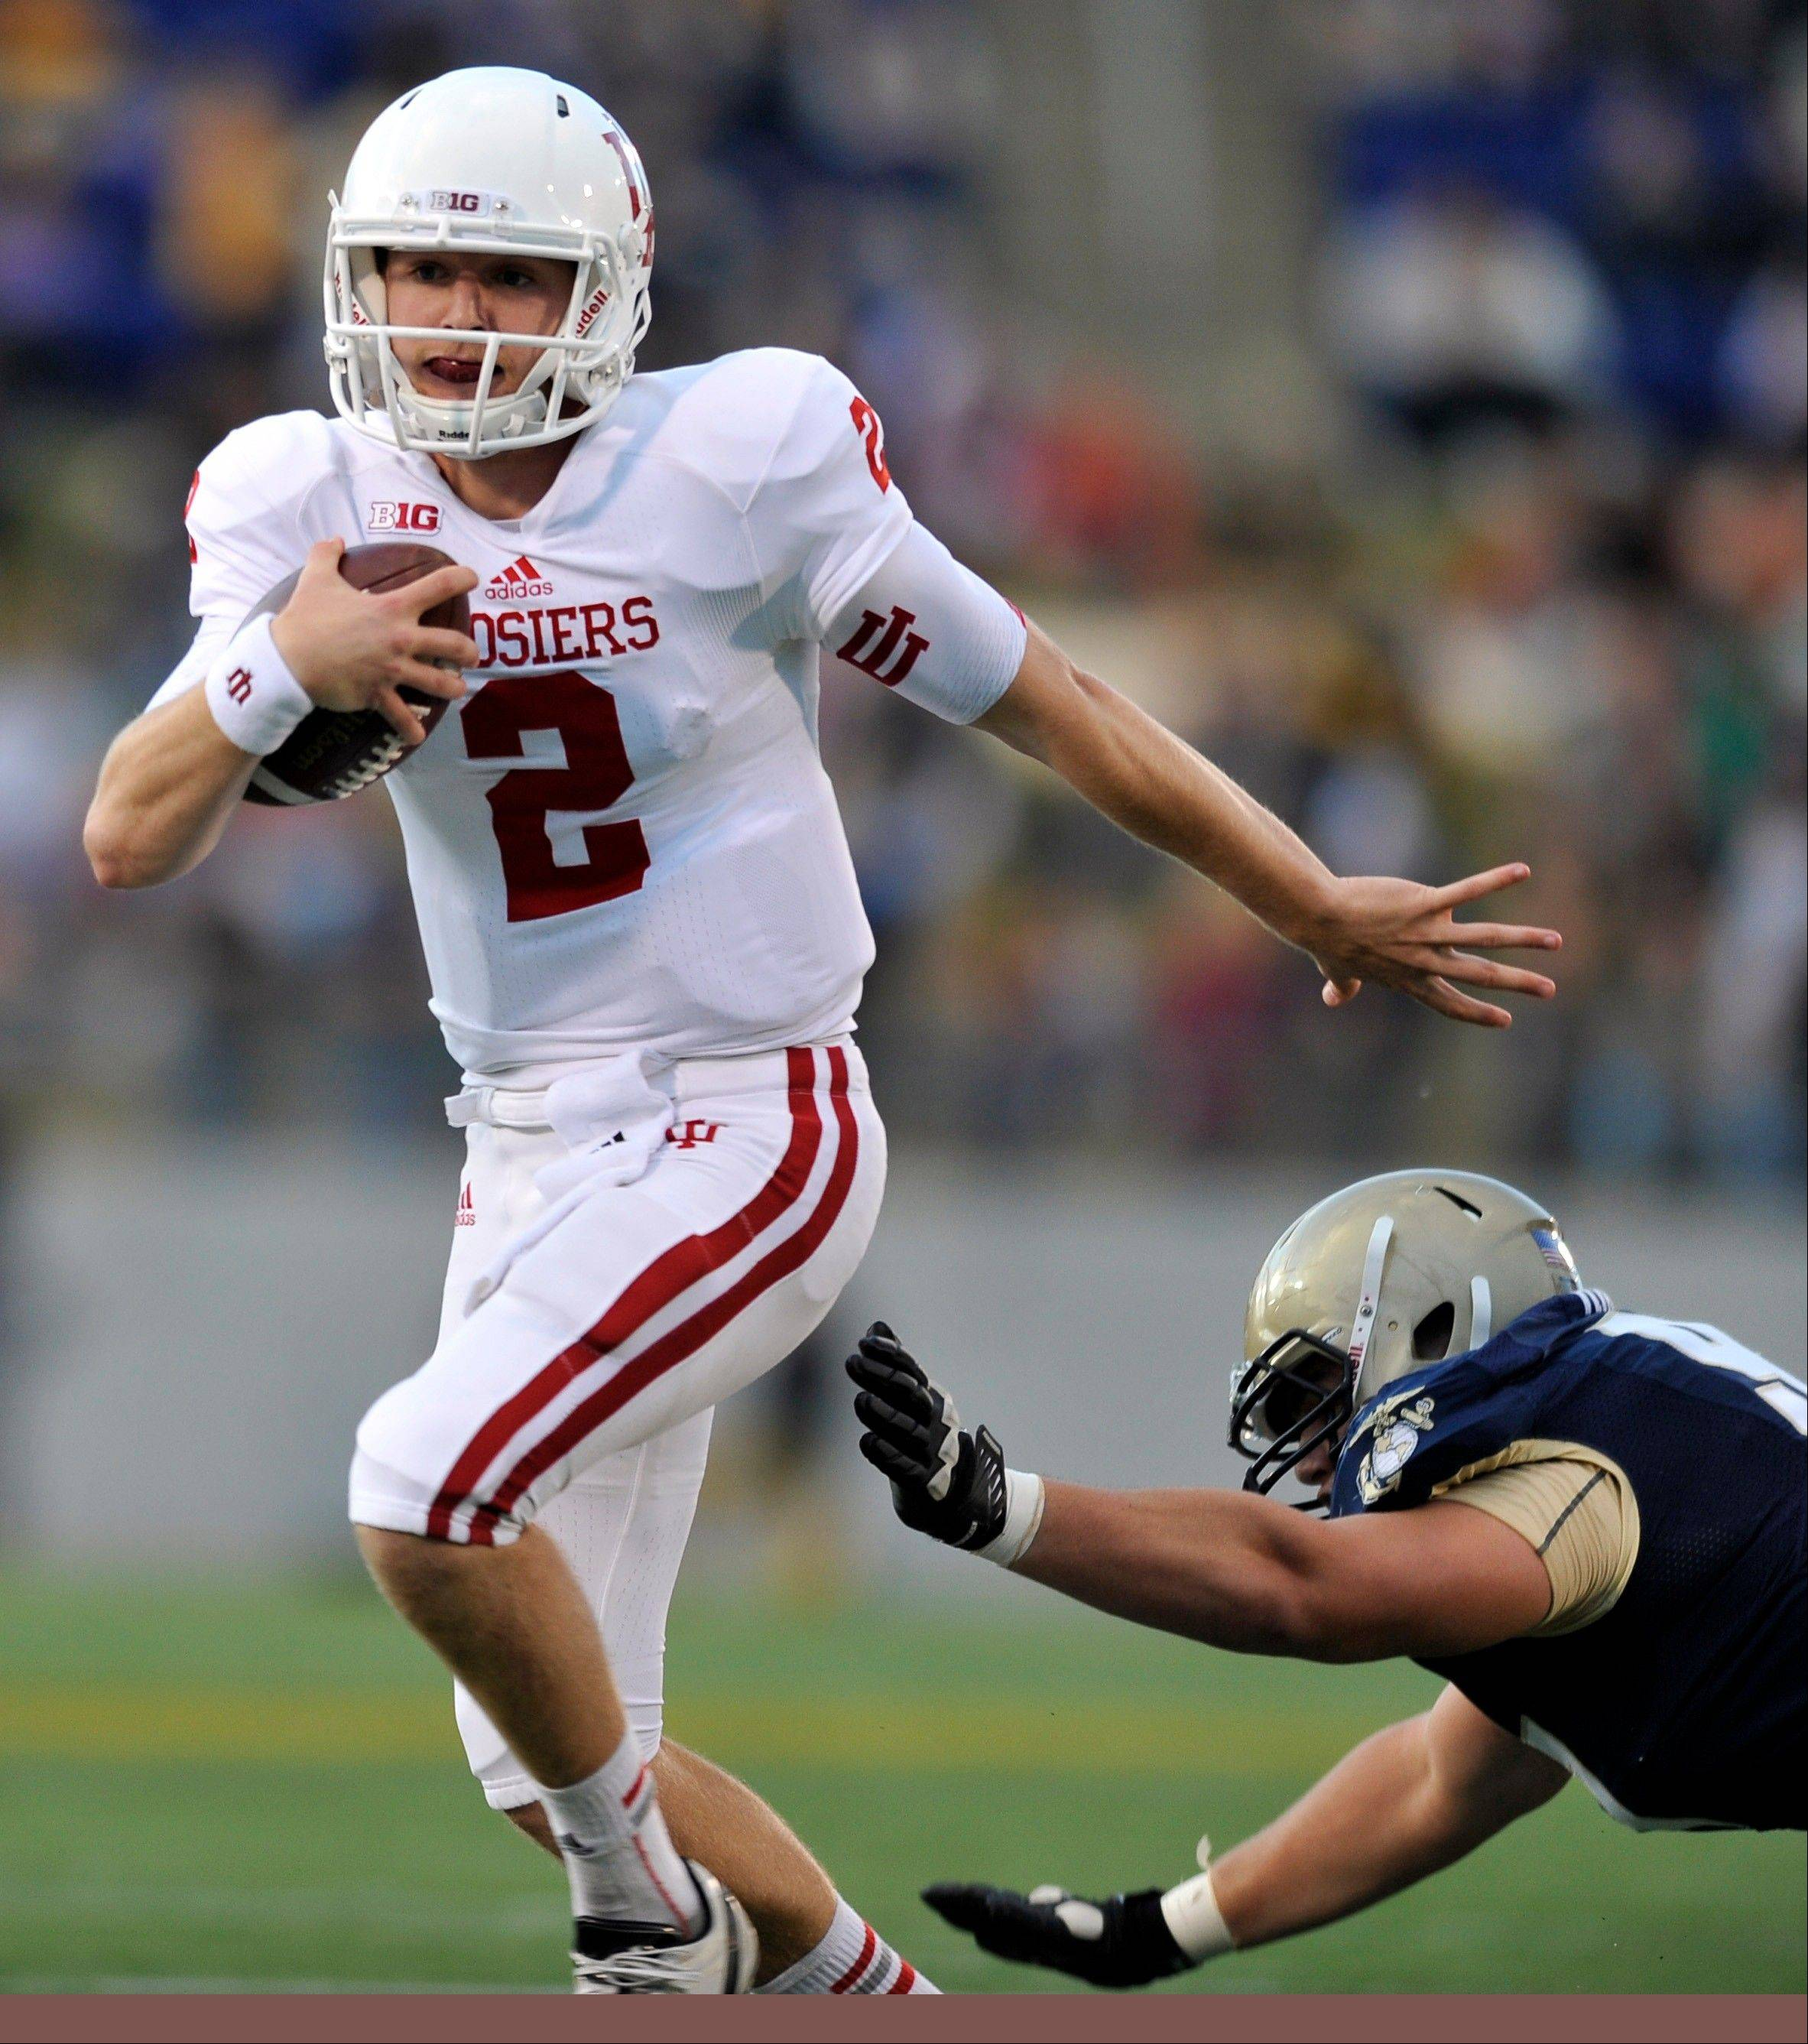 Indiana quarterback Cameron Coffman runs the ball against Navy Saturday during the second half in Annapolis, Md. Navy won 31-30.